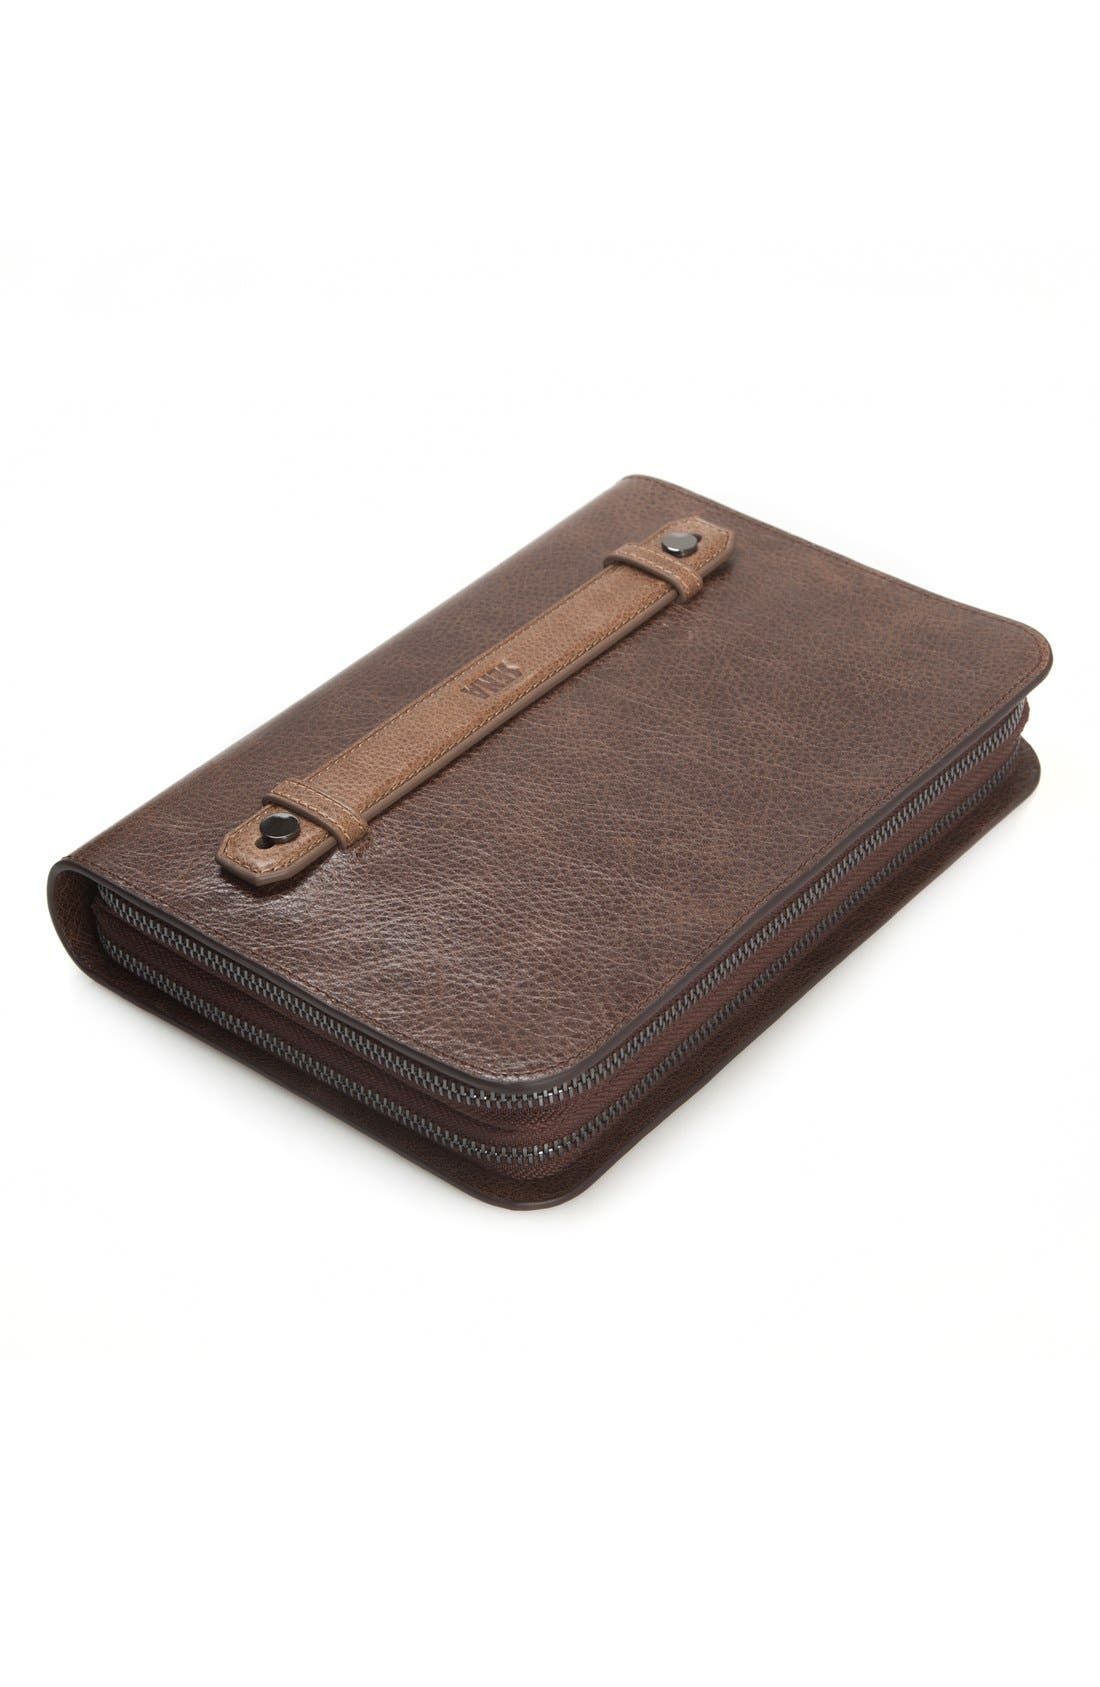 Sena 'Heritage' iPad mini All-in-One Case